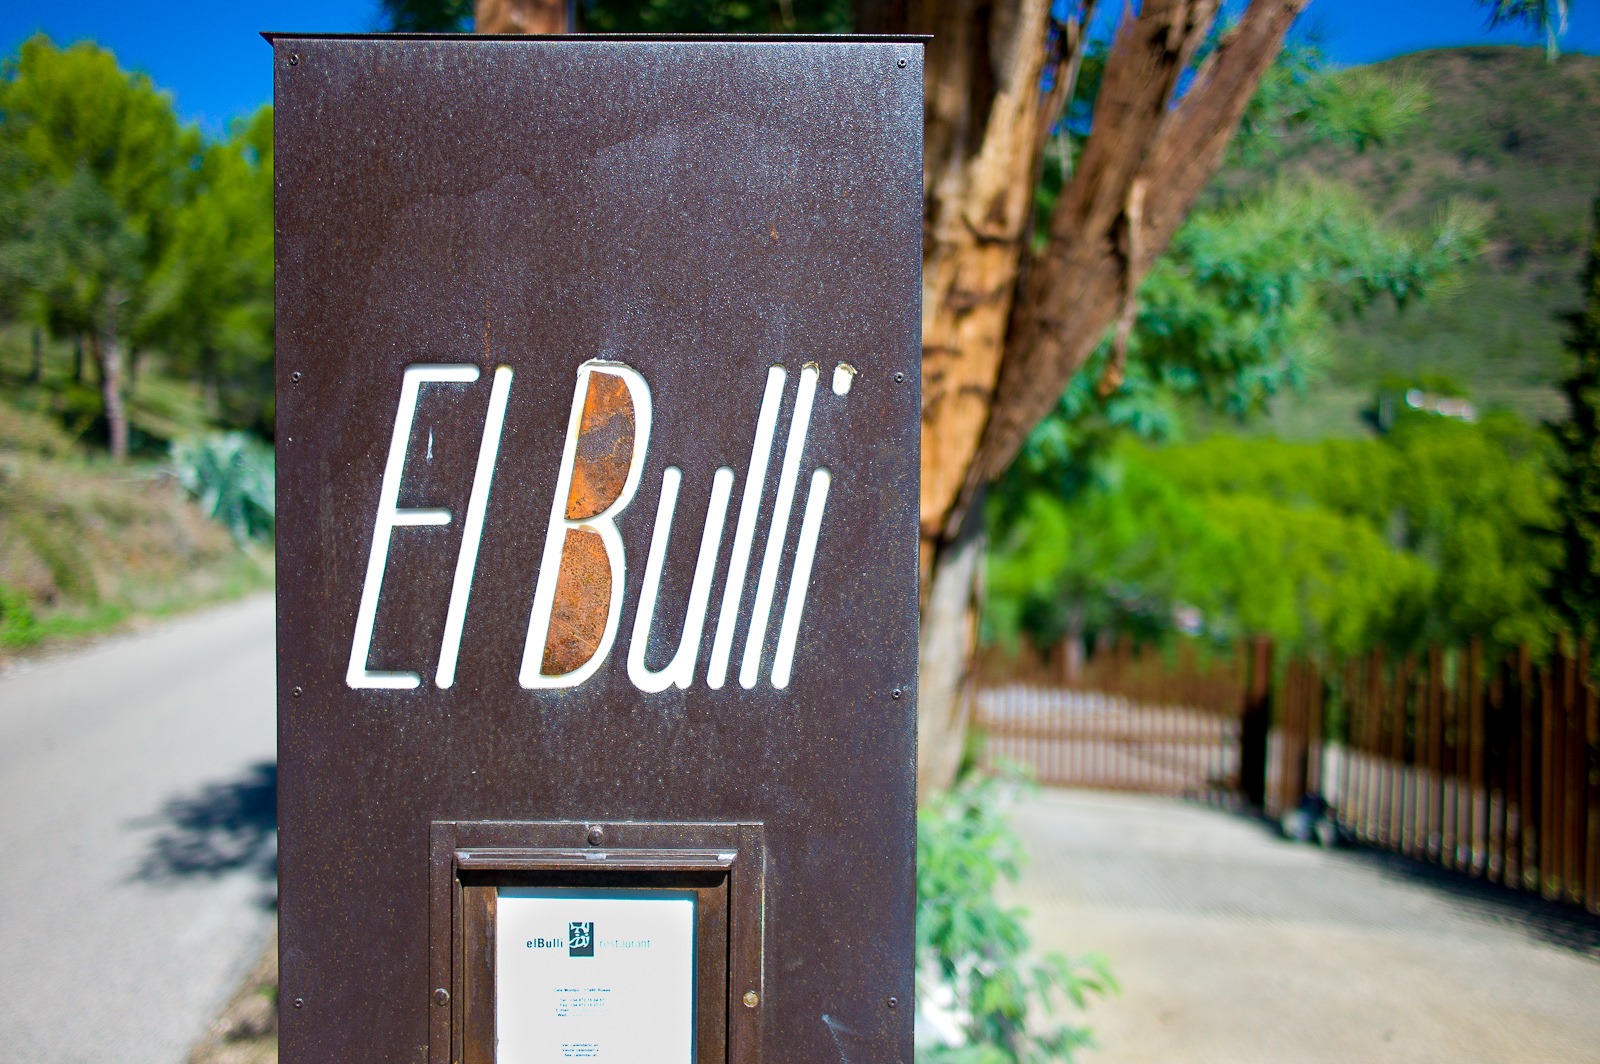 El Bulli - Entrance to the Restaurant